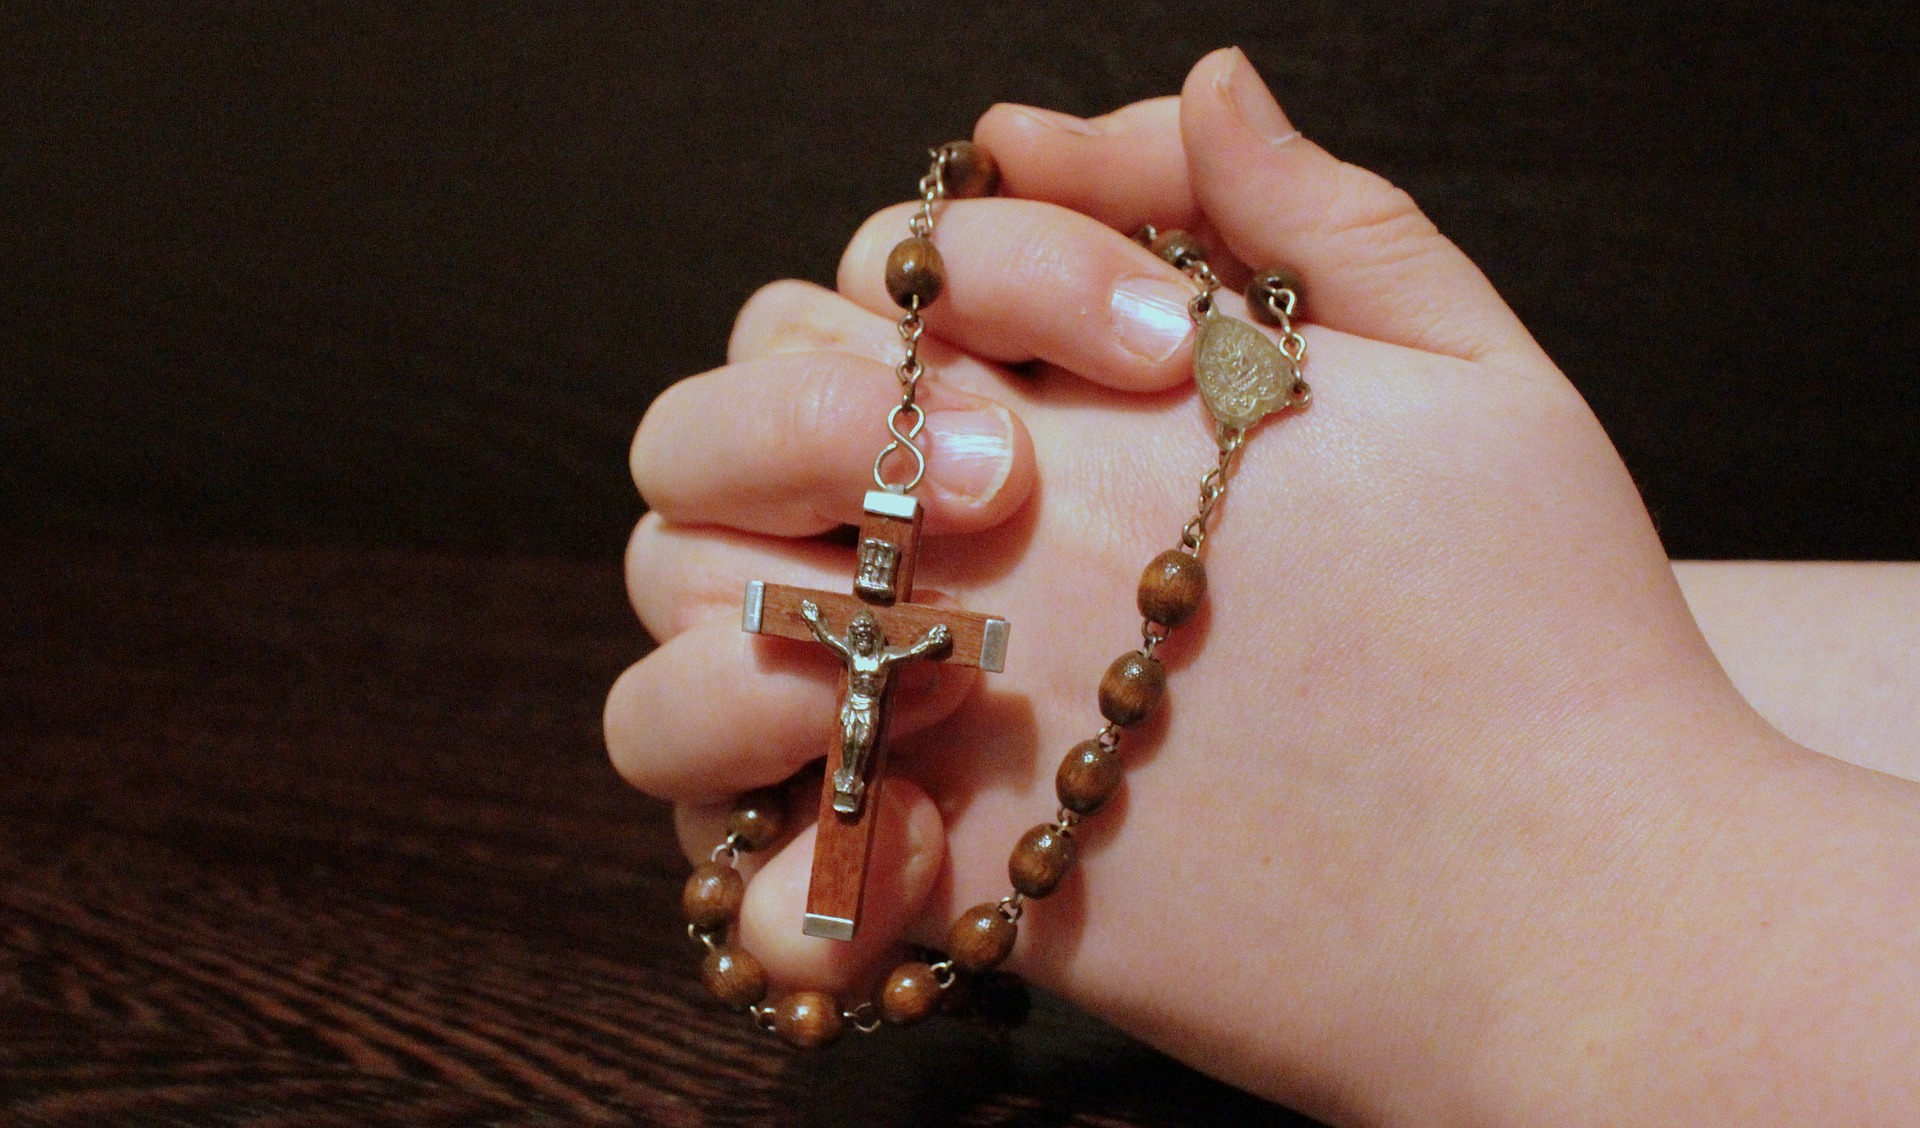 Holding string of beads, praying to god photo